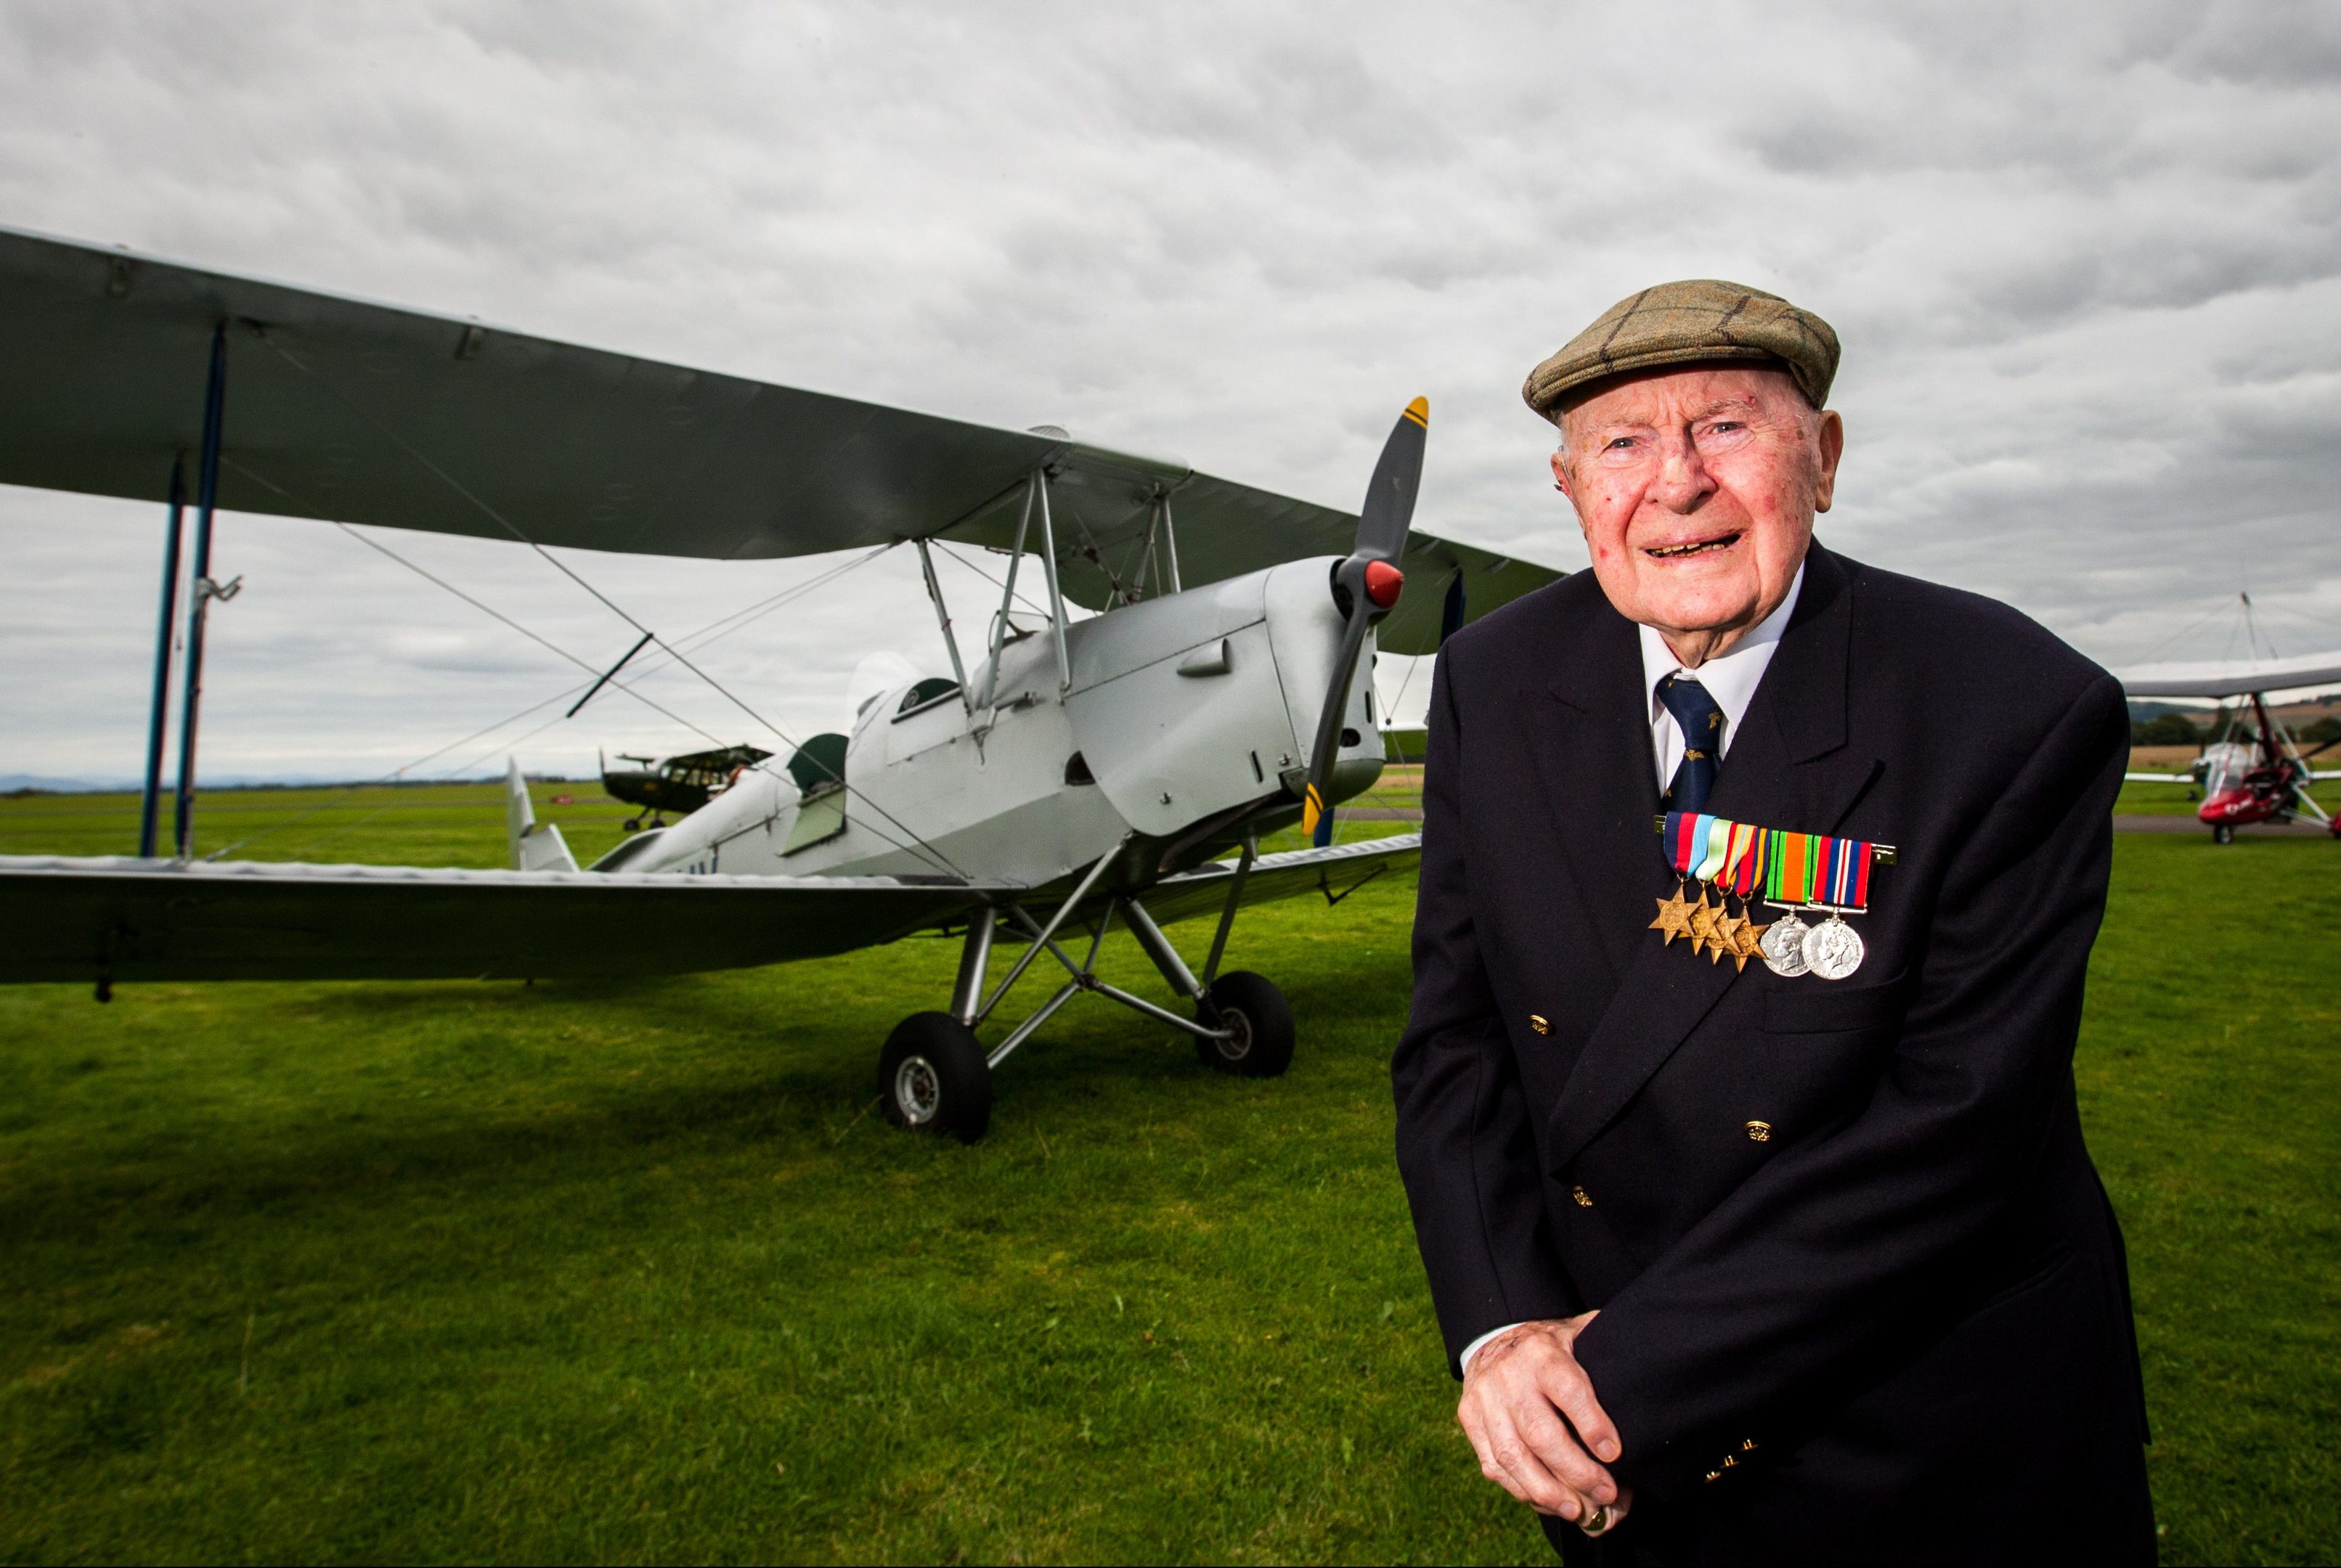 John Moffat at Perth airport last year before he took to the skies.